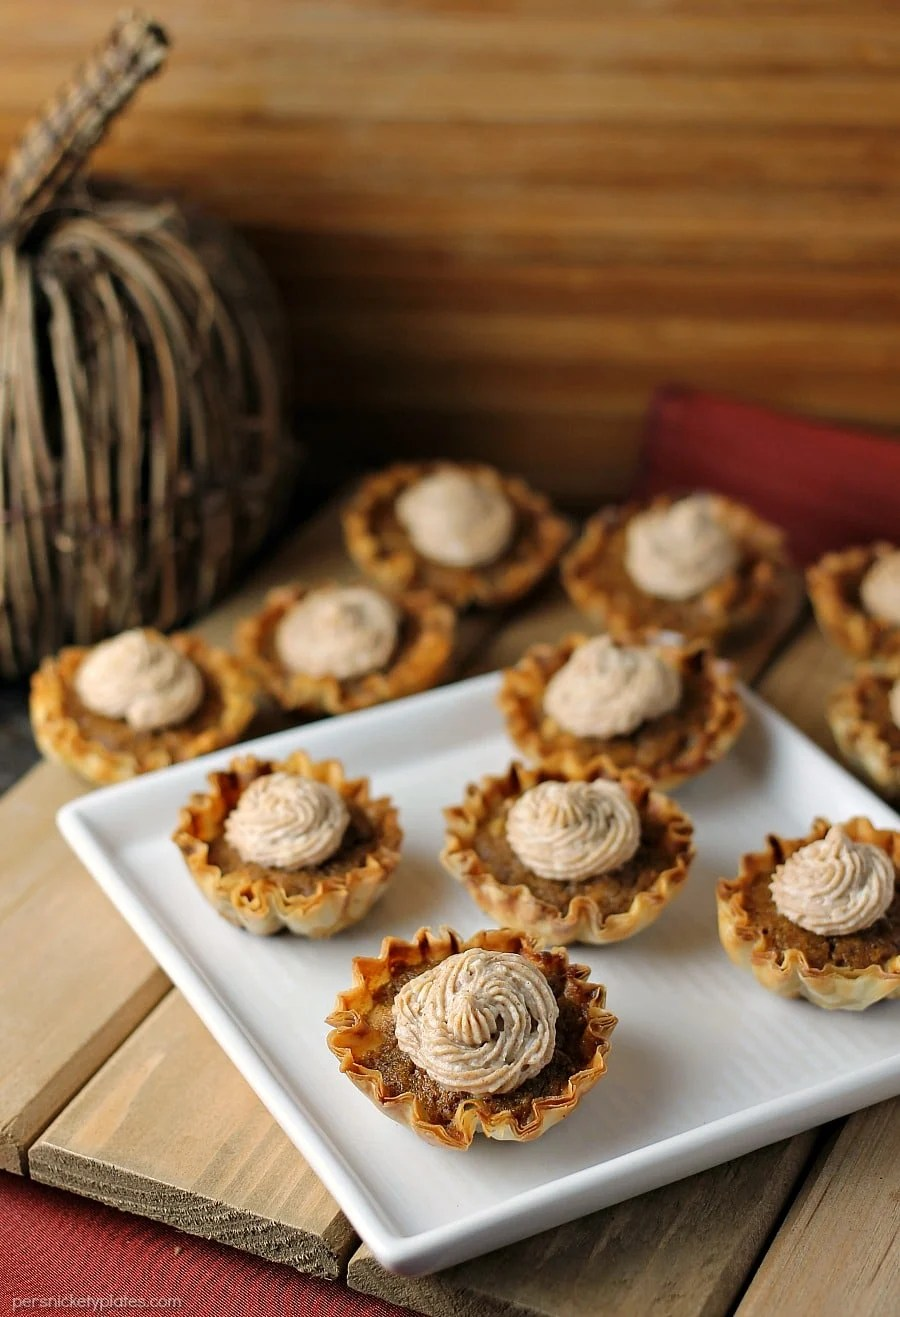 Mini Sweet Potato Pies with Cinnamon Cream Cheese Frosting are super easy to make but look fancy. Impress your guests with these bite sized treats!   www.persnicketyplates.com